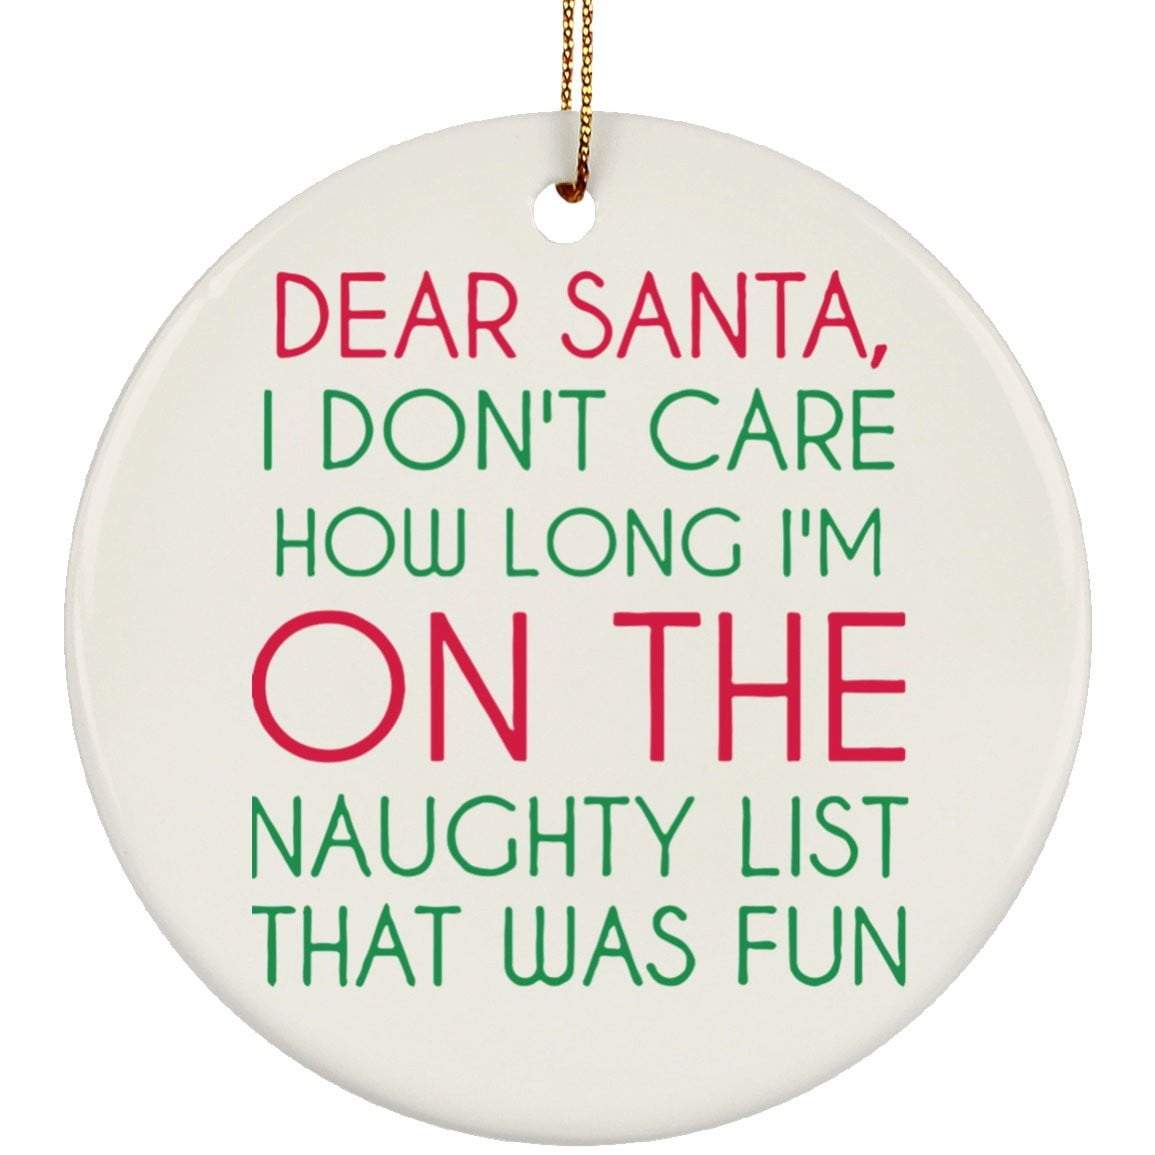 ON THE NAUGHTY LIST Christmas Ceramic Circle Ornament